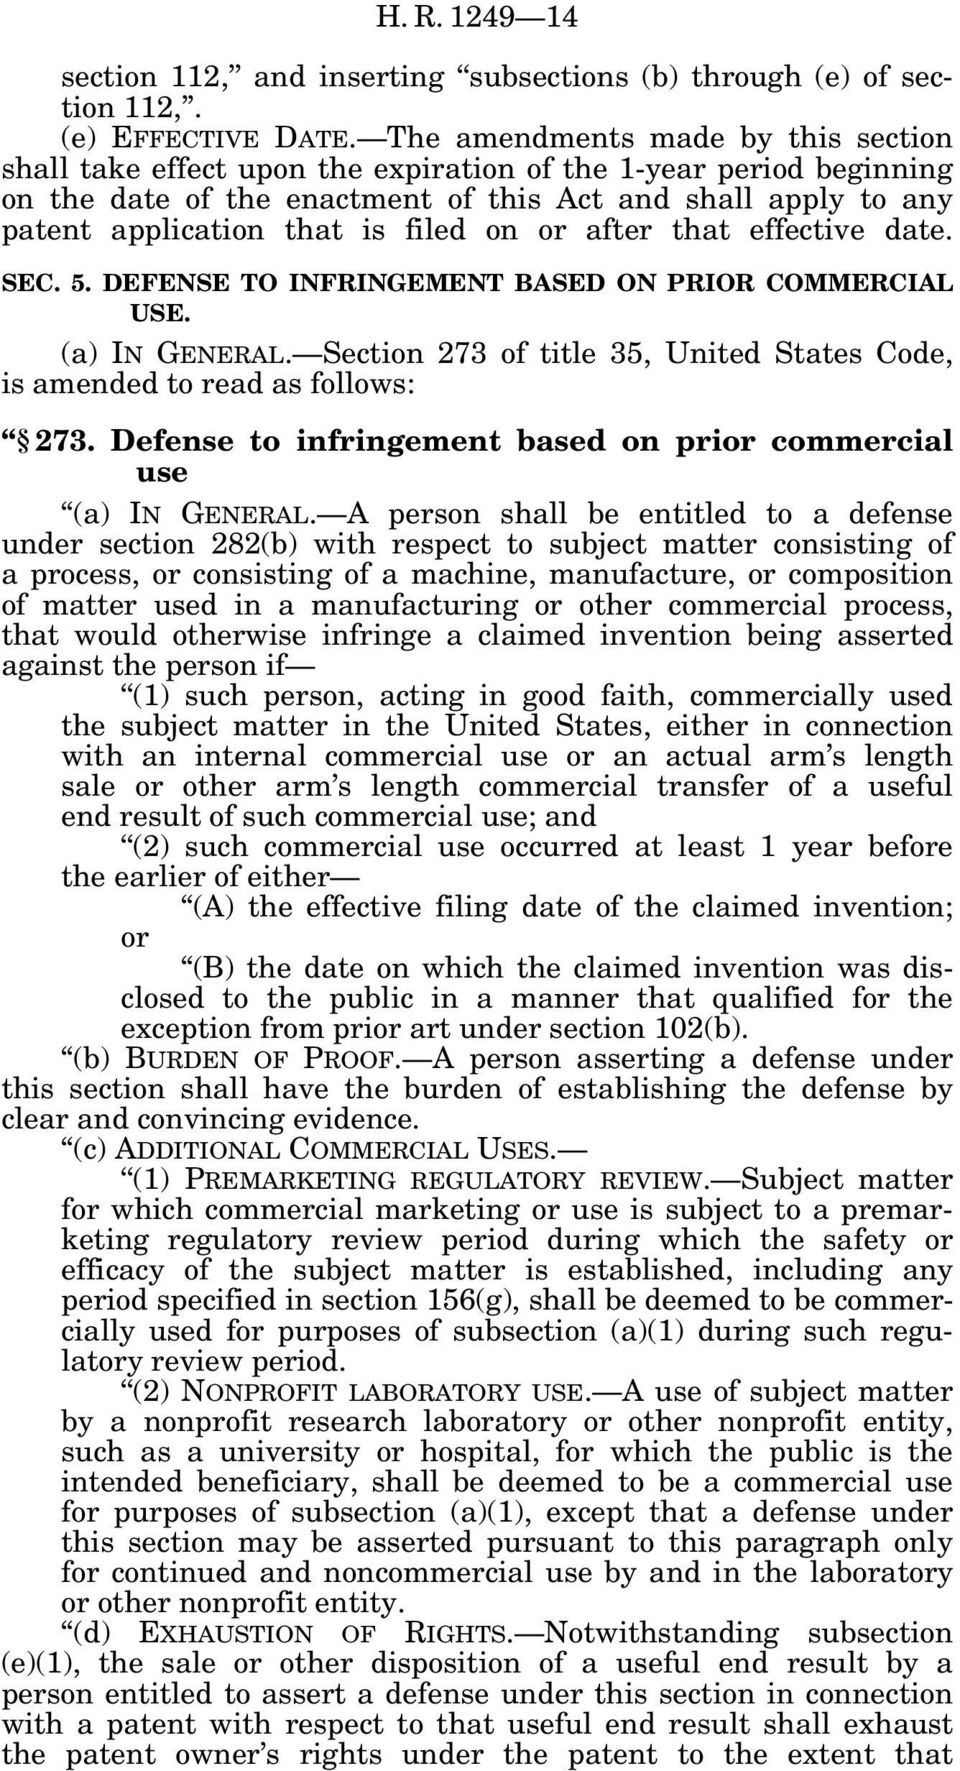 filed on or after that effective date. SEC. 5. DEFENSE TO INFRINGEMENT BASED ON PRIOR COMMERCIAL USE. (a) IN GENERAL. Section 273 of title 35, United States Code, is amended to read as follows: 273.